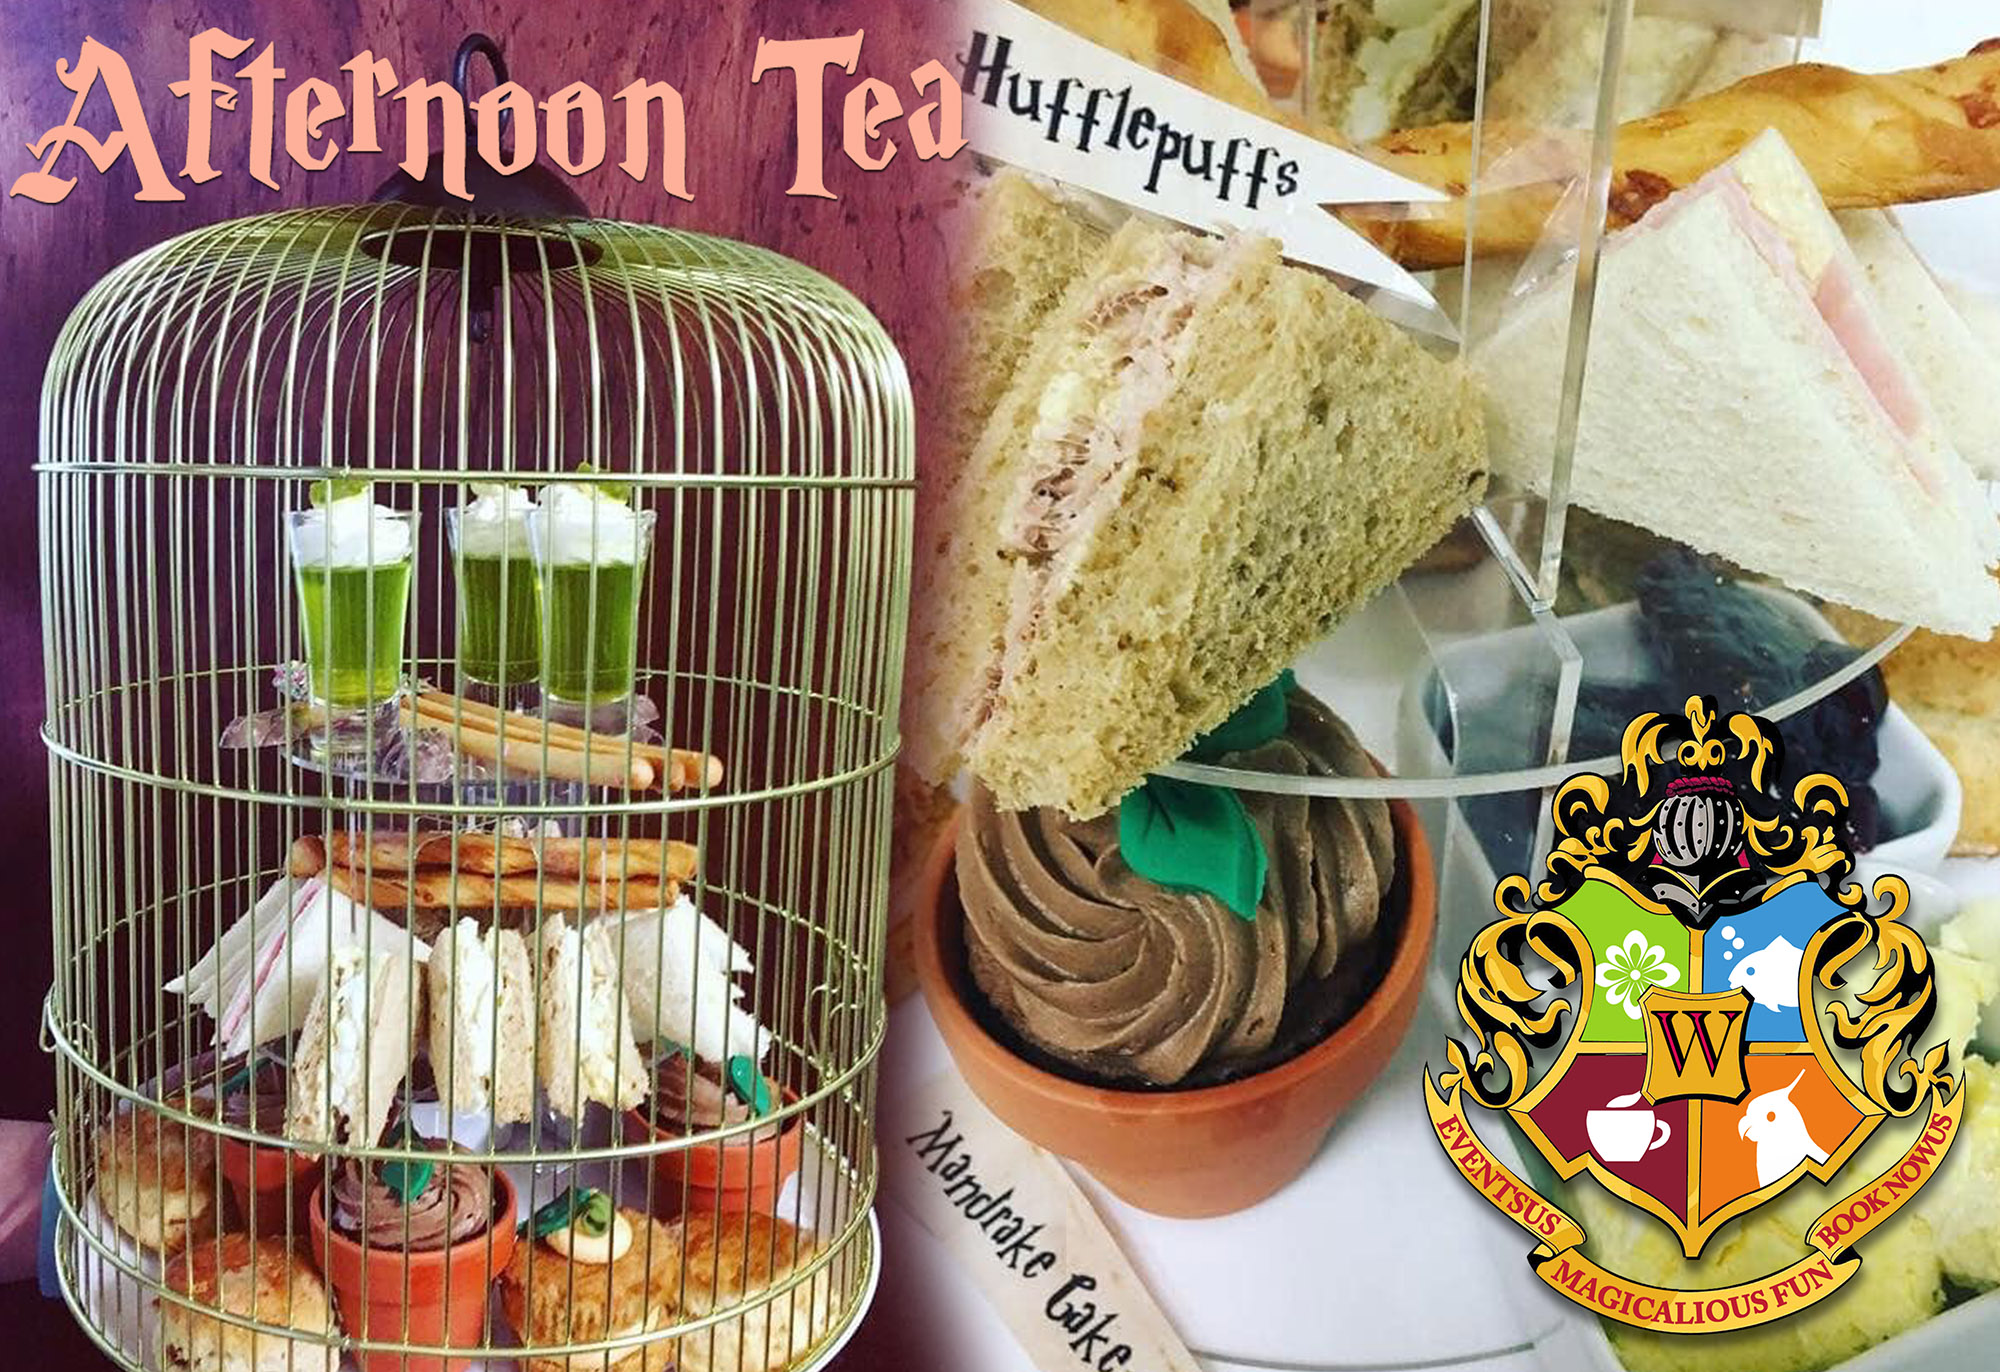 Potter afternoon tea